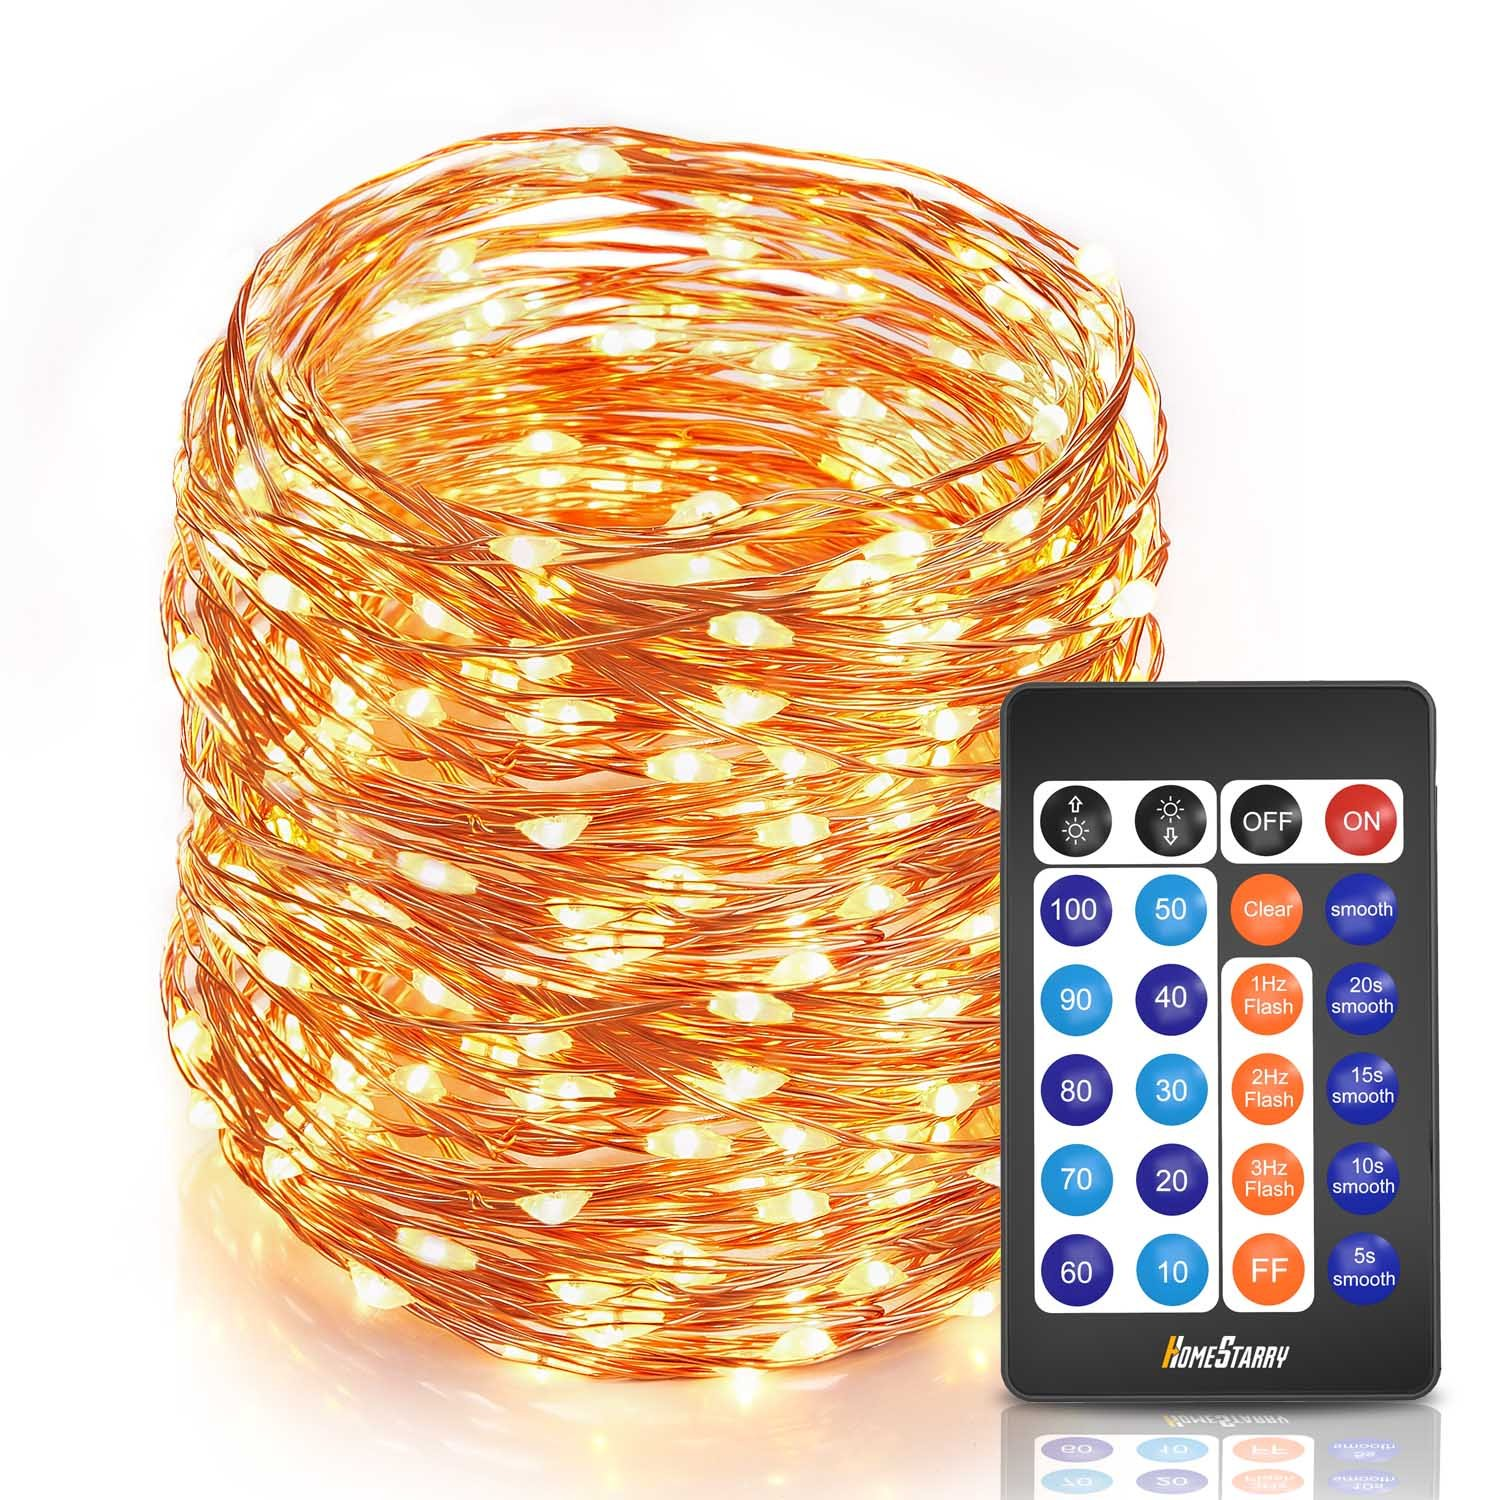 Homestarry Waterproof Decorative Outdoor String Lights 20 Ft 120 100leds Warm White Copper Wire Led Strip 12v Dc Dimmable Starry Wedding Fairy Lighting For Bedroom Home Party Christmas Tree Commercial Usewarm